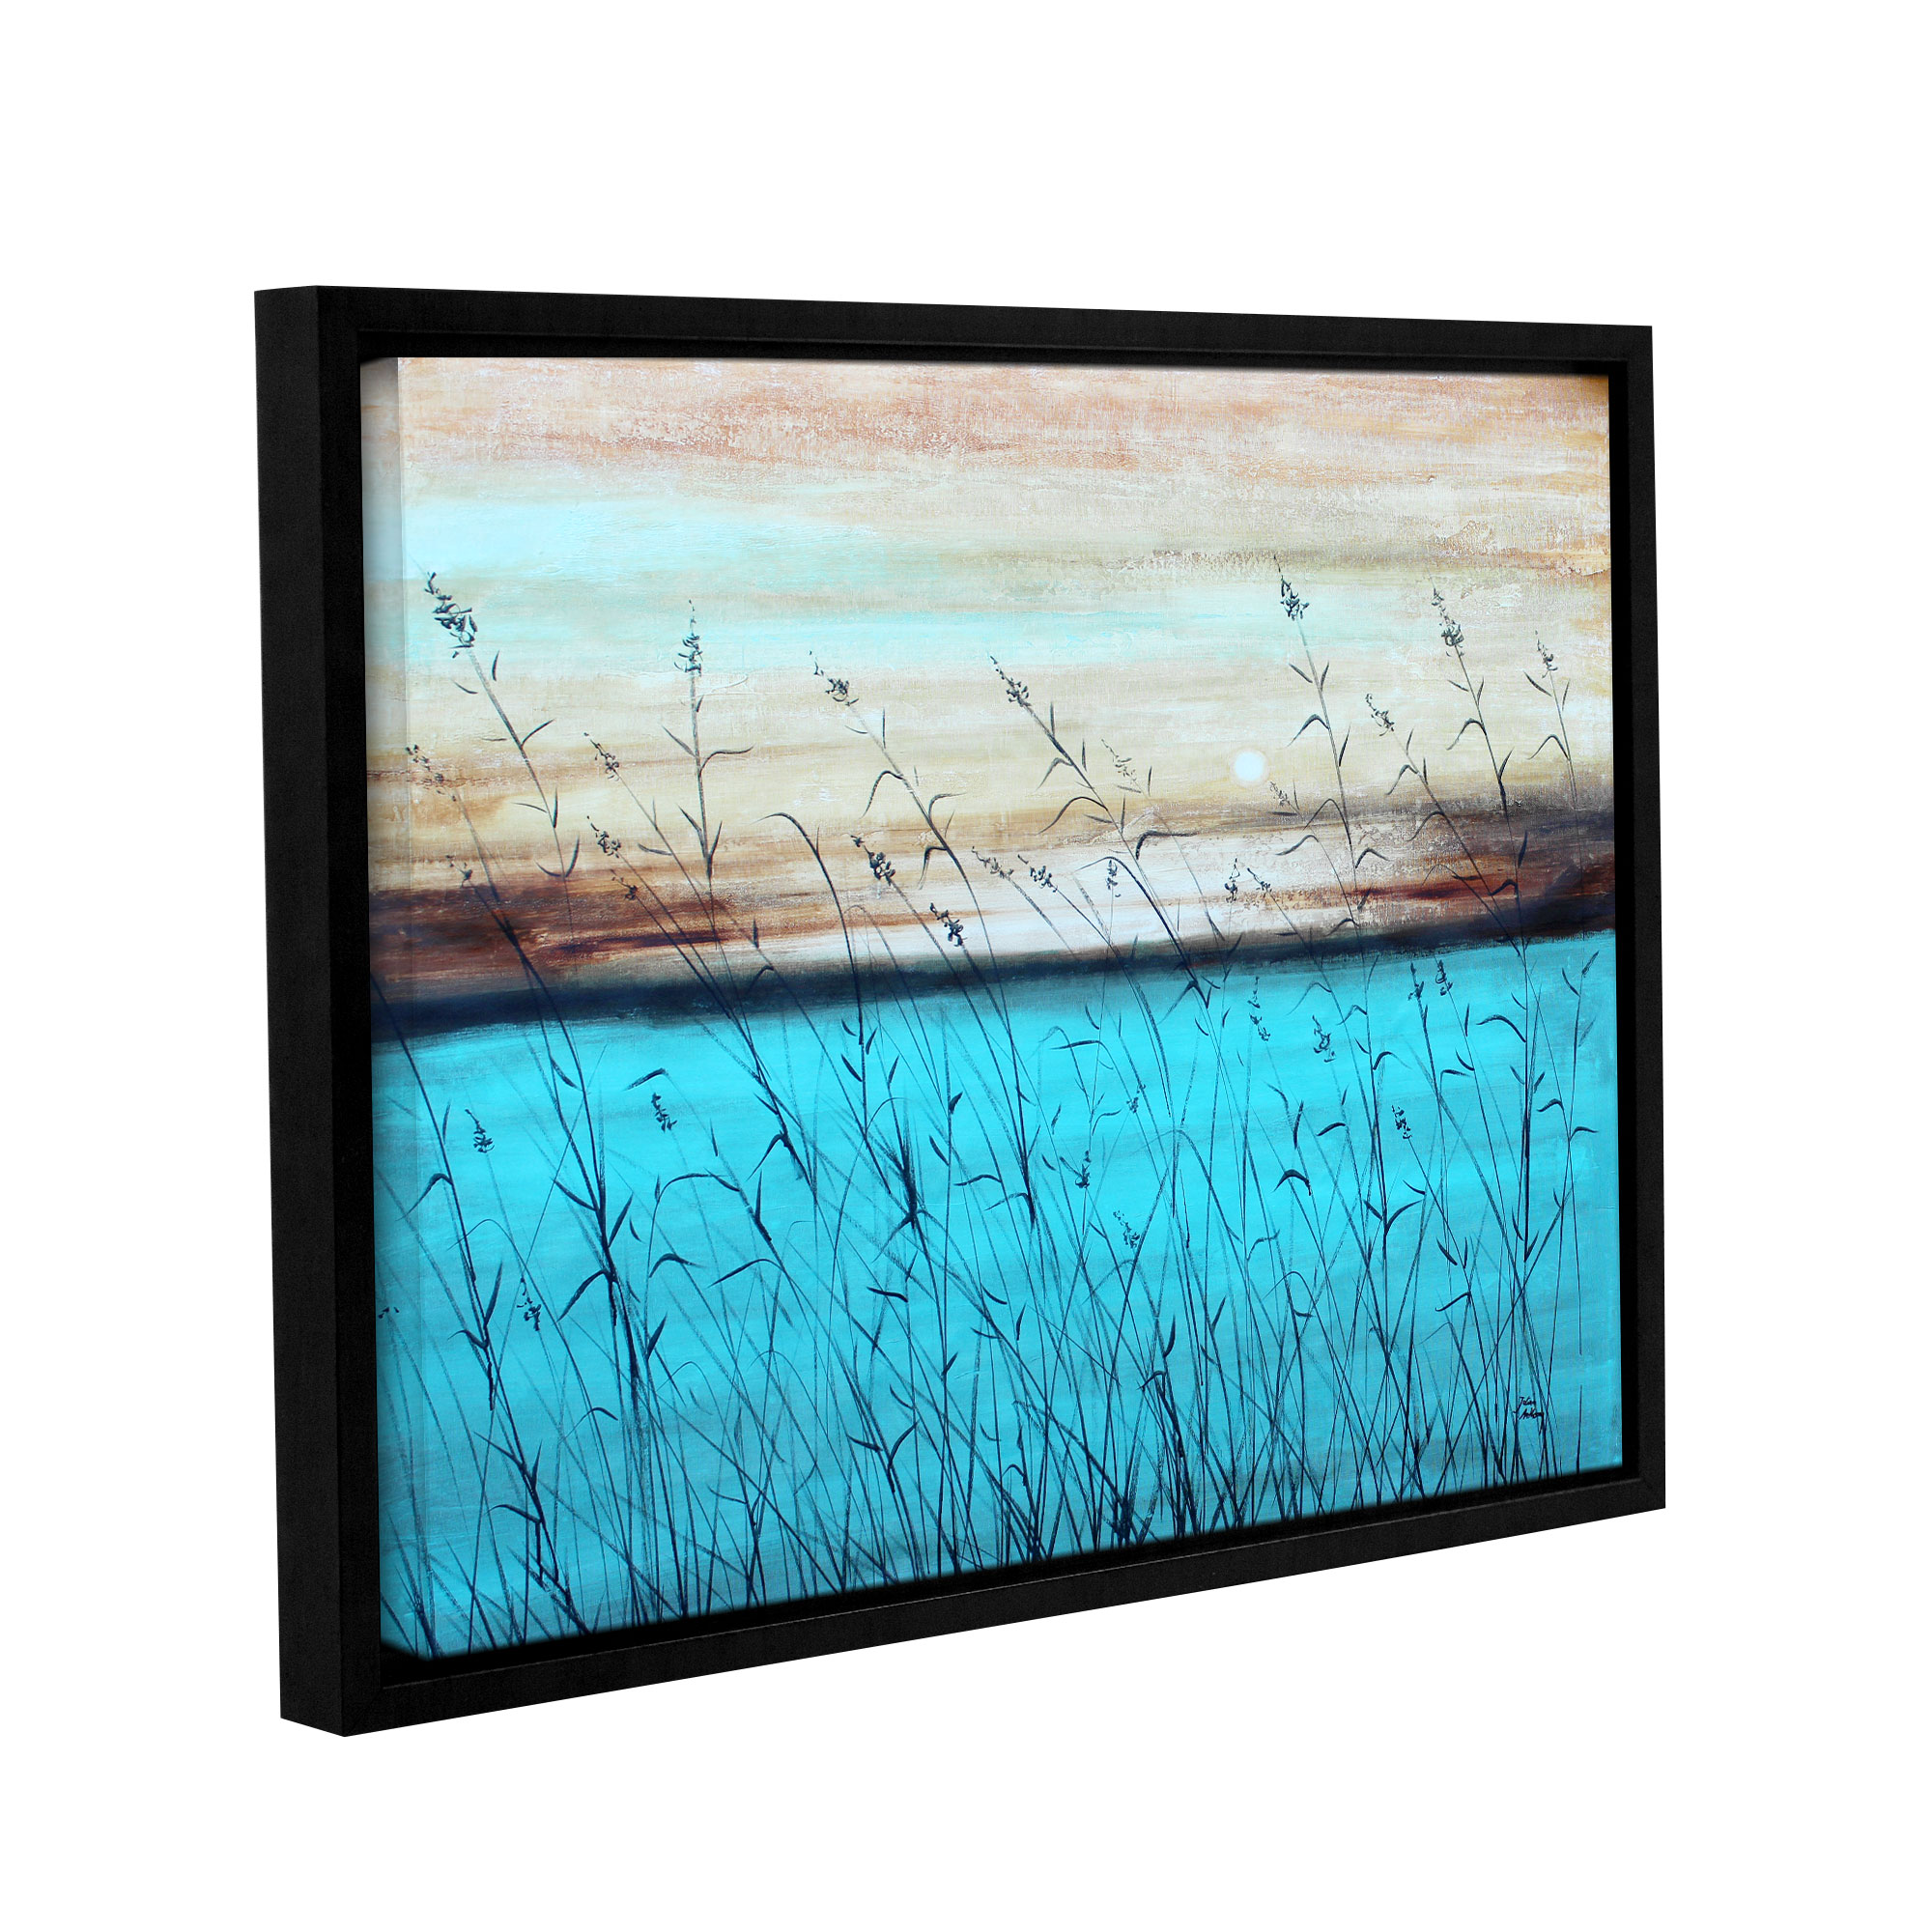 Dawn (brighter one)' Gallery Wrapped Floater-framed Canvas Art Print